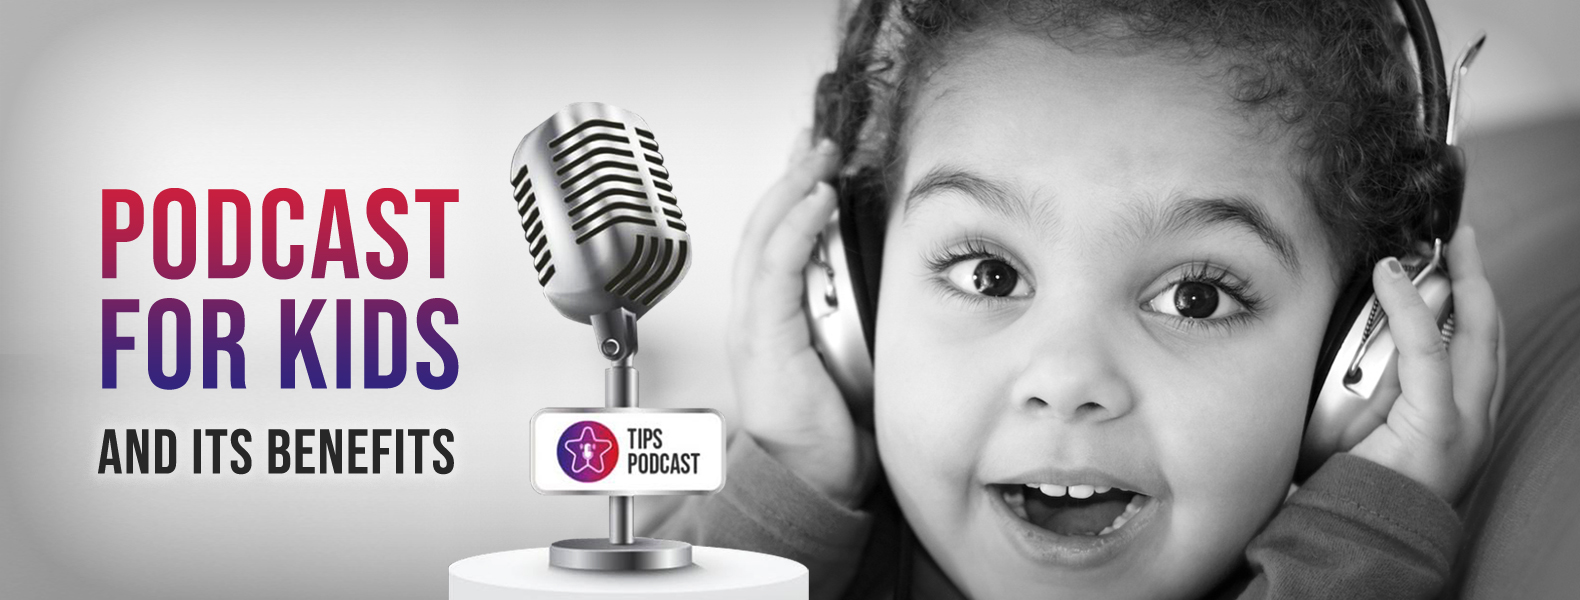 Podcast for Kids and Its Benefits TIPS PODCAST